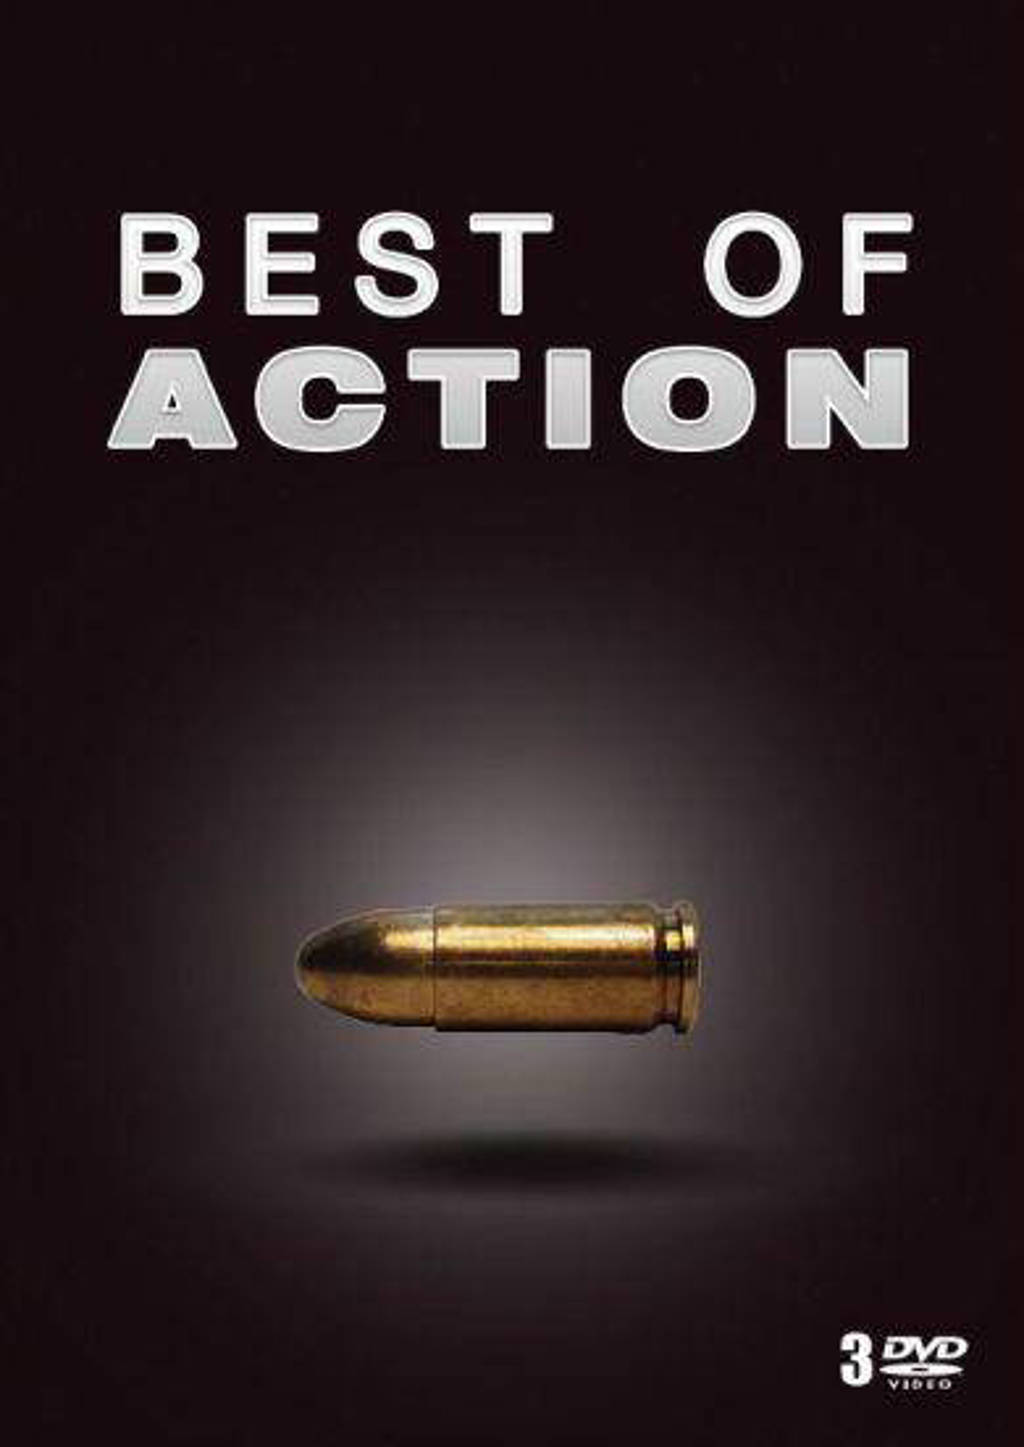 Best of action 1 (DVD)